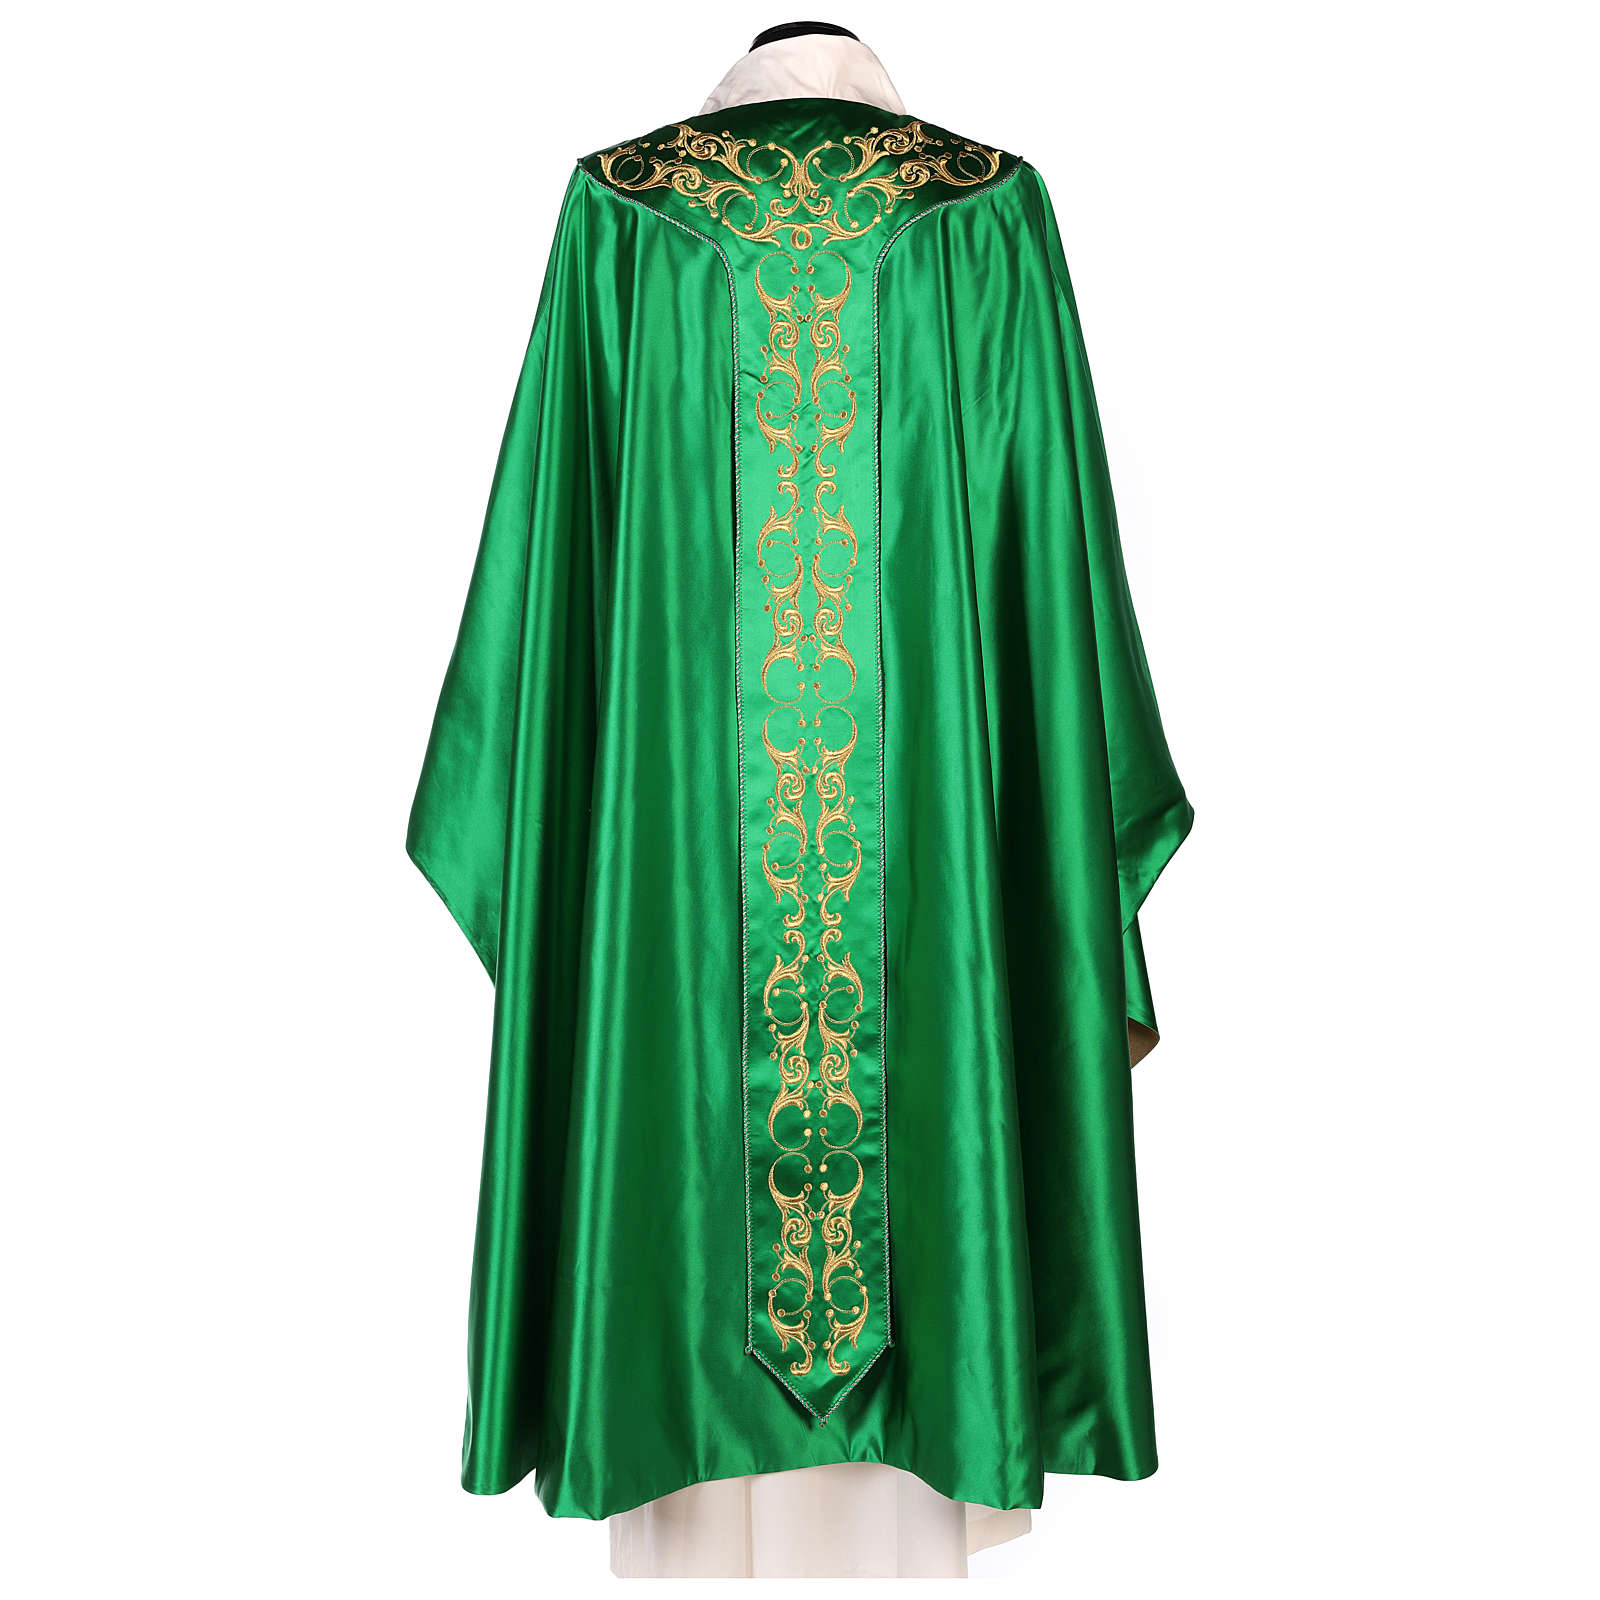 Medieval Chasuble in pure silk with floral embroidery on orphrey 4